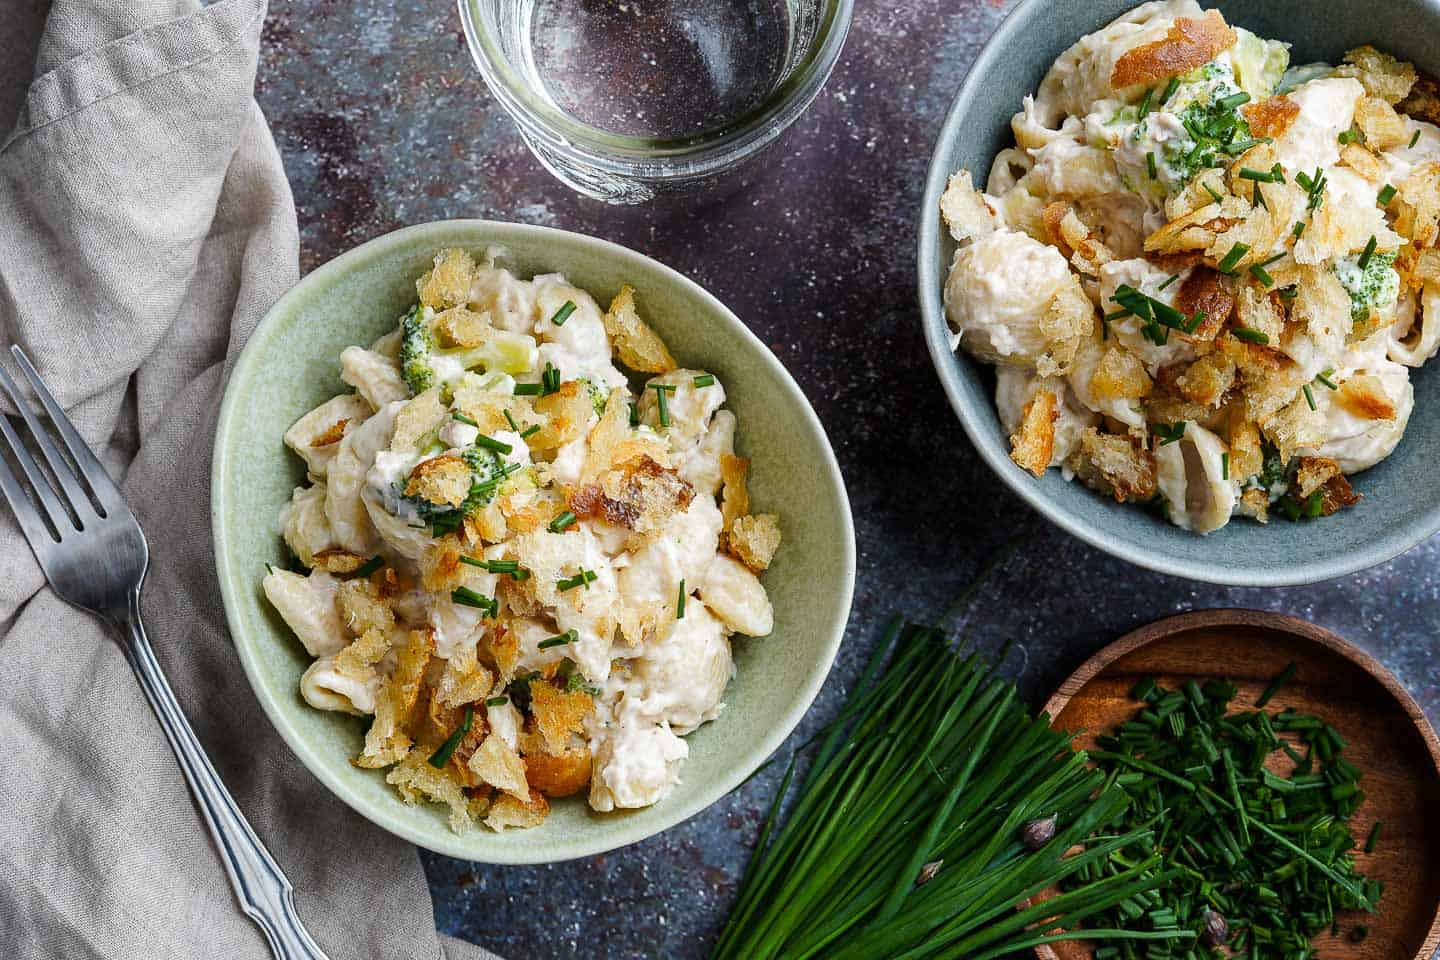 Stovetop Tuna Noodle Casserole in 2 Bowls